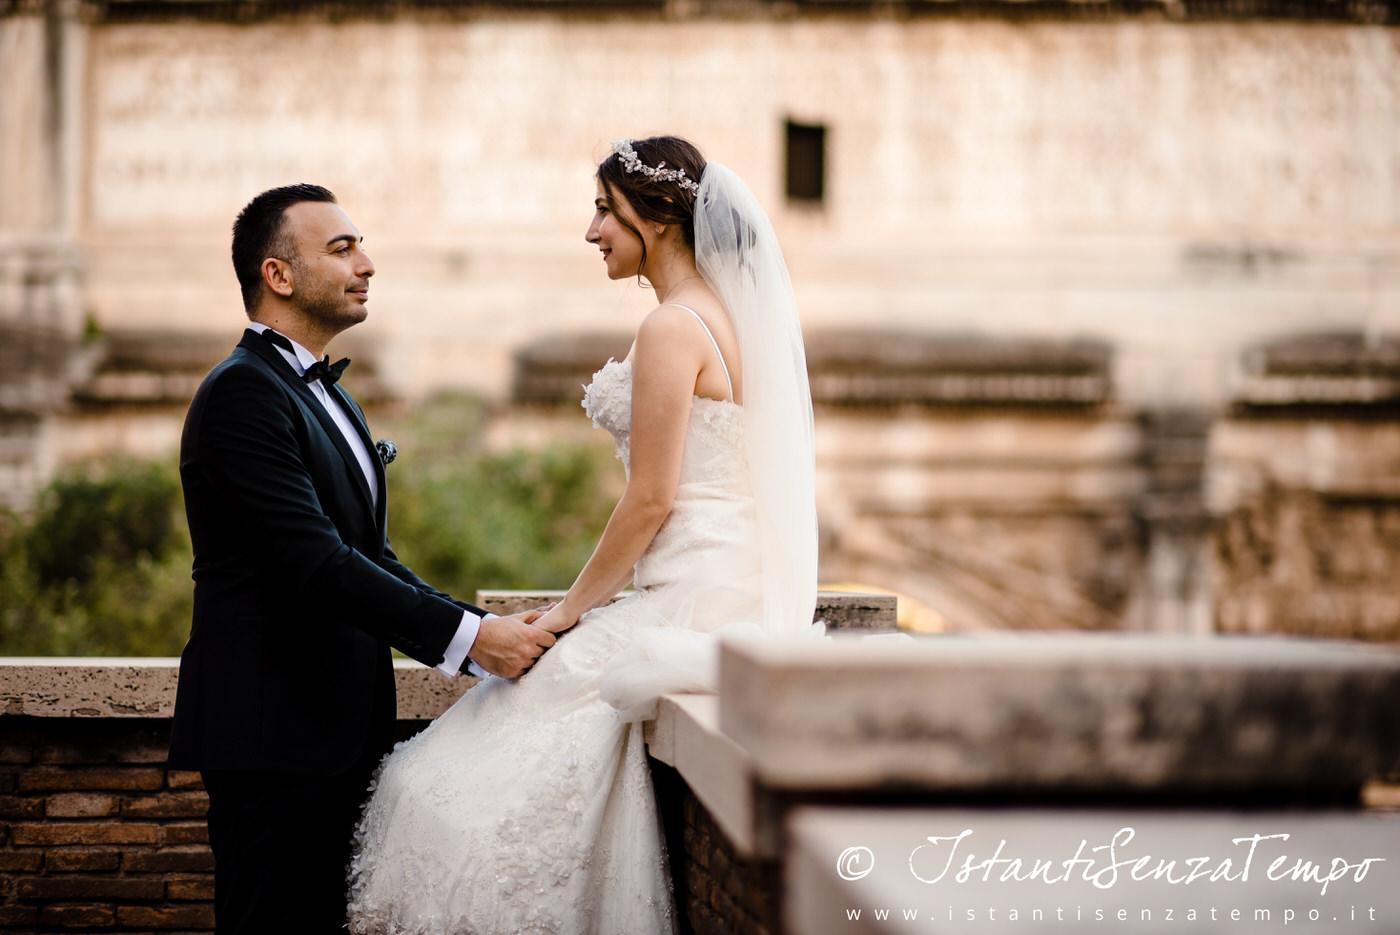 turkish wedding in rome italy-19